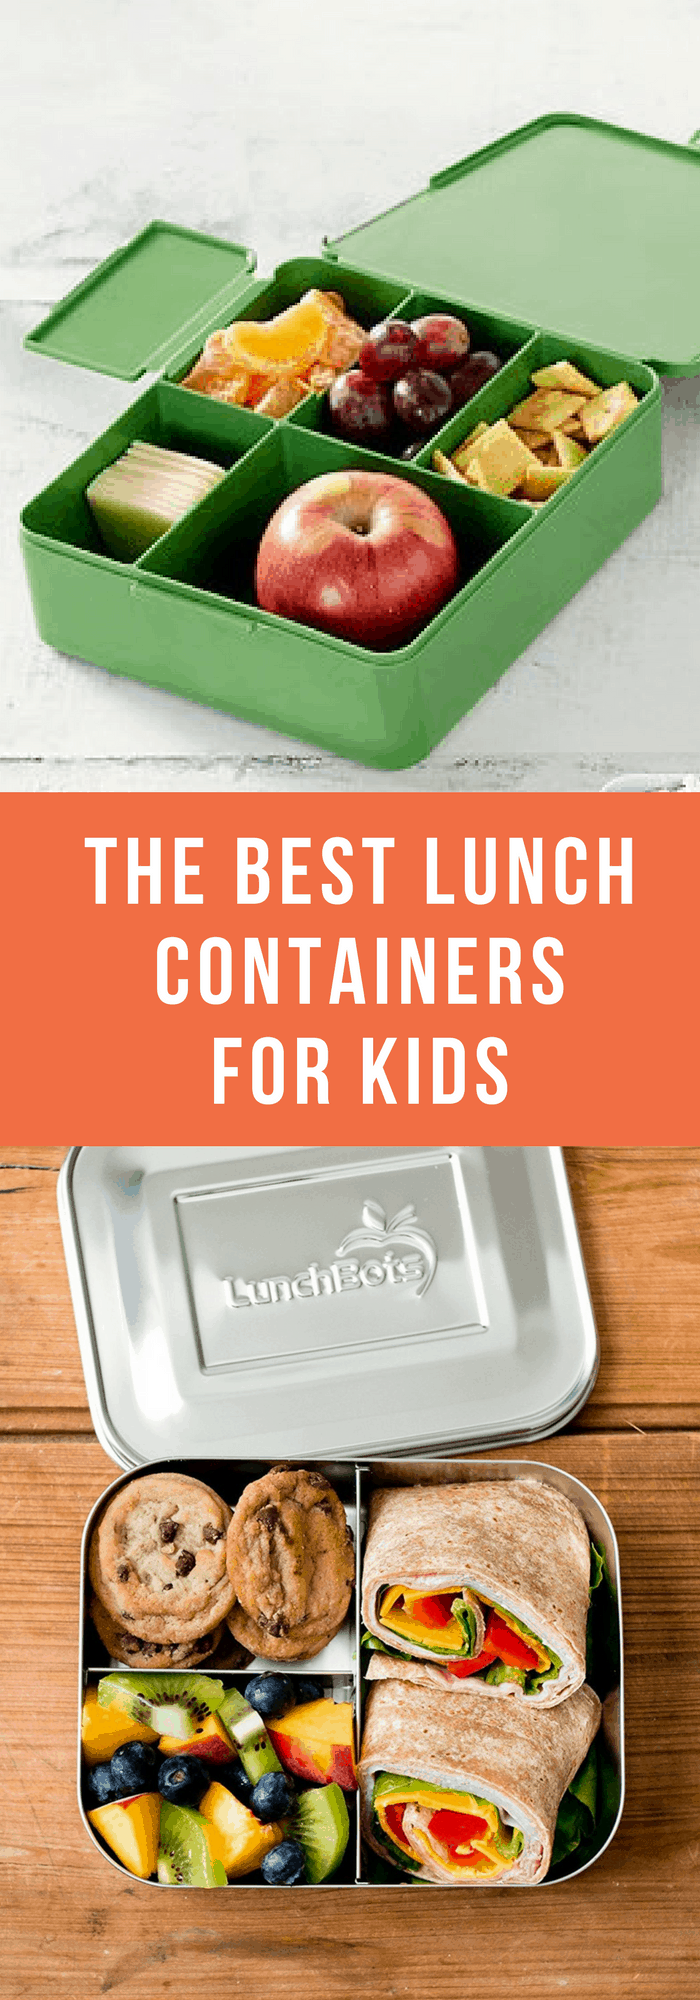 Parenting--The Best Lunch Containers for Kids--The Organized Mom